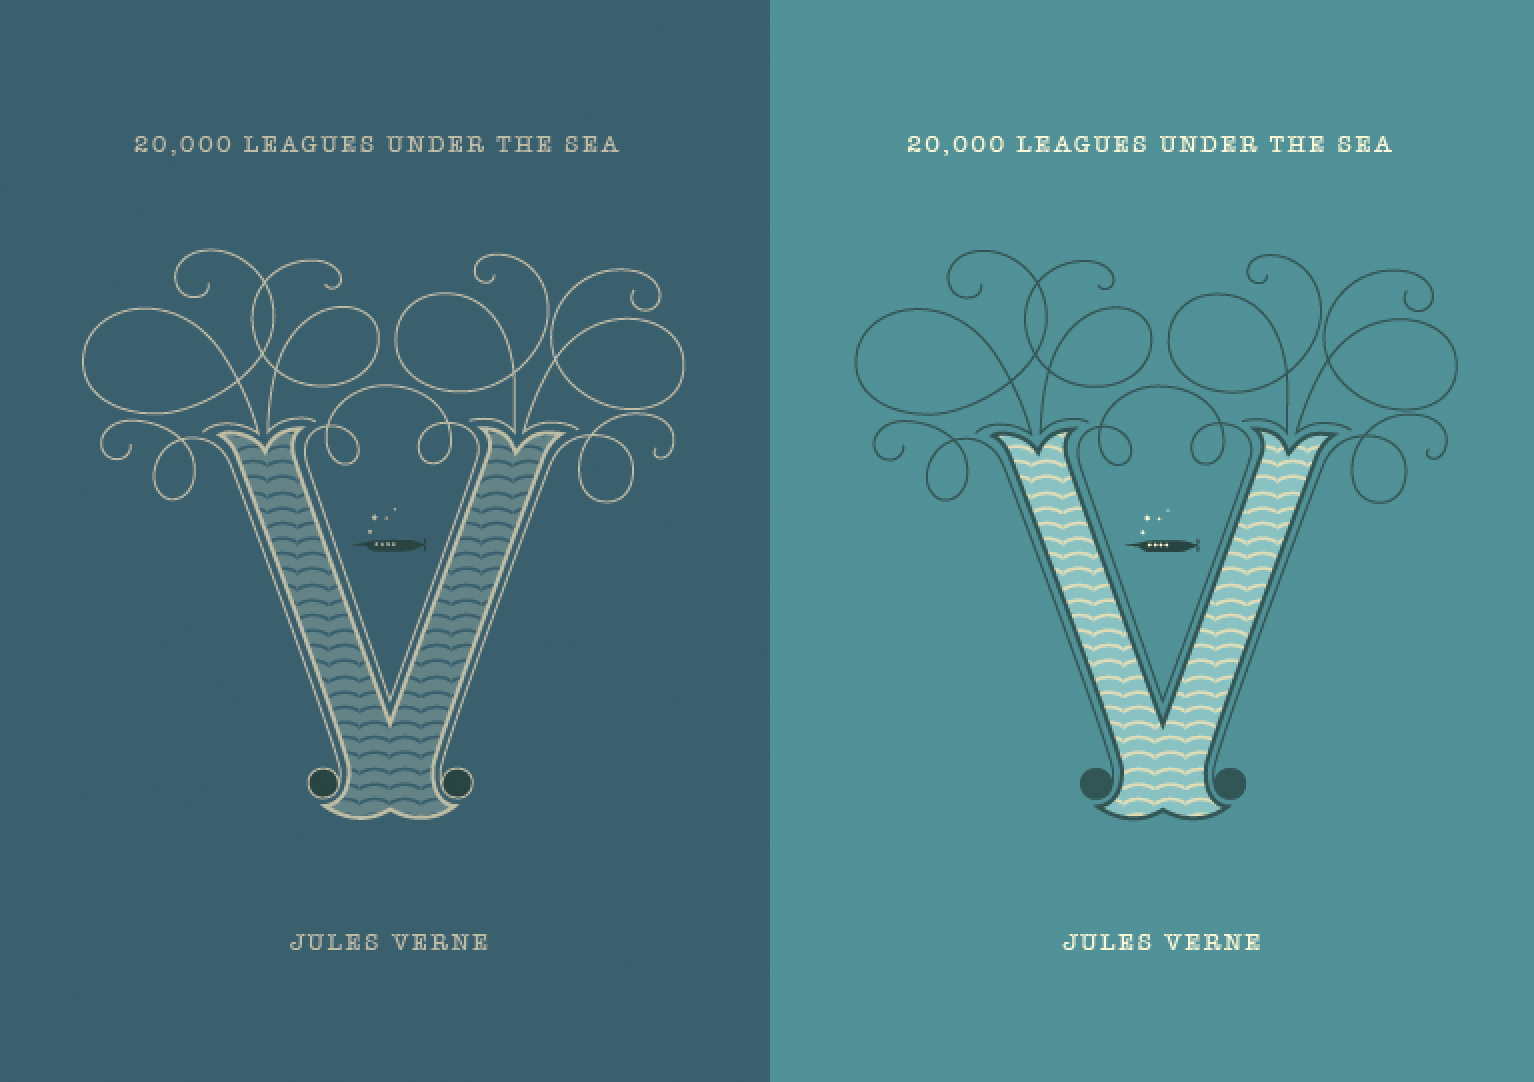 20,000 Leagues Under the Sea by Jules Verne - image 11 - student project